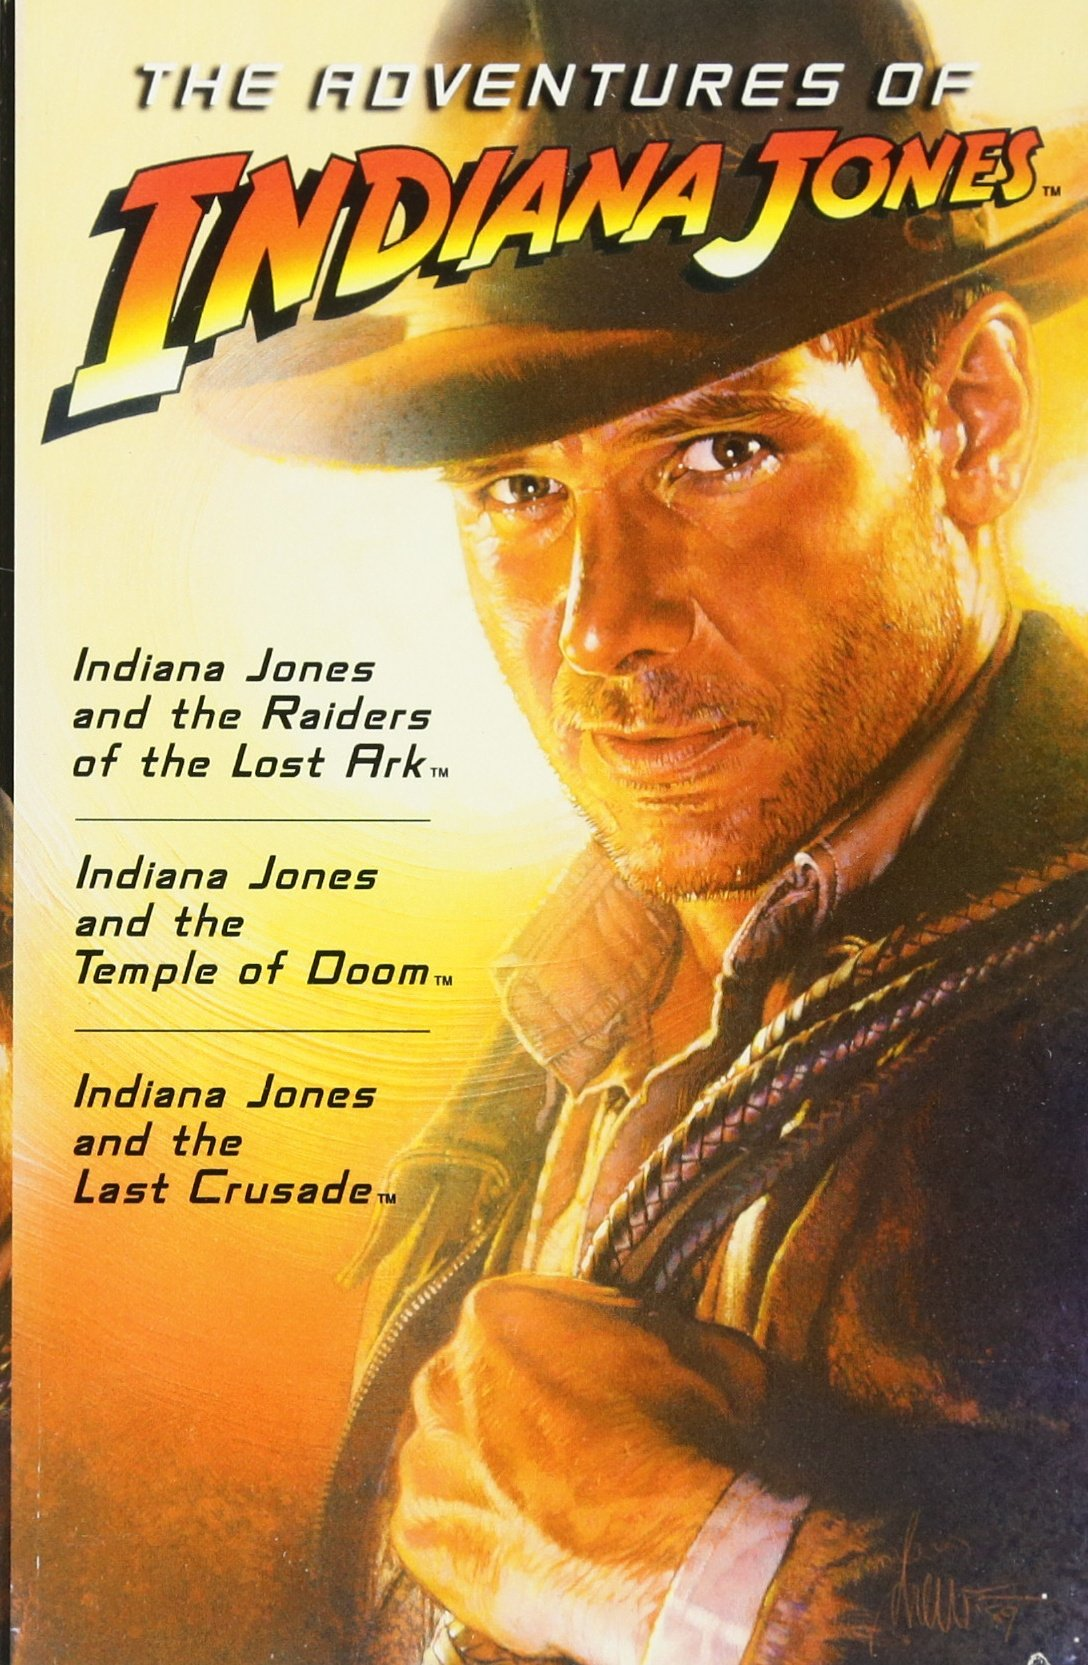 THE ADVENTURES OF INDIANA JONES (3 in 1) - BLACK, C., KAHN, ...